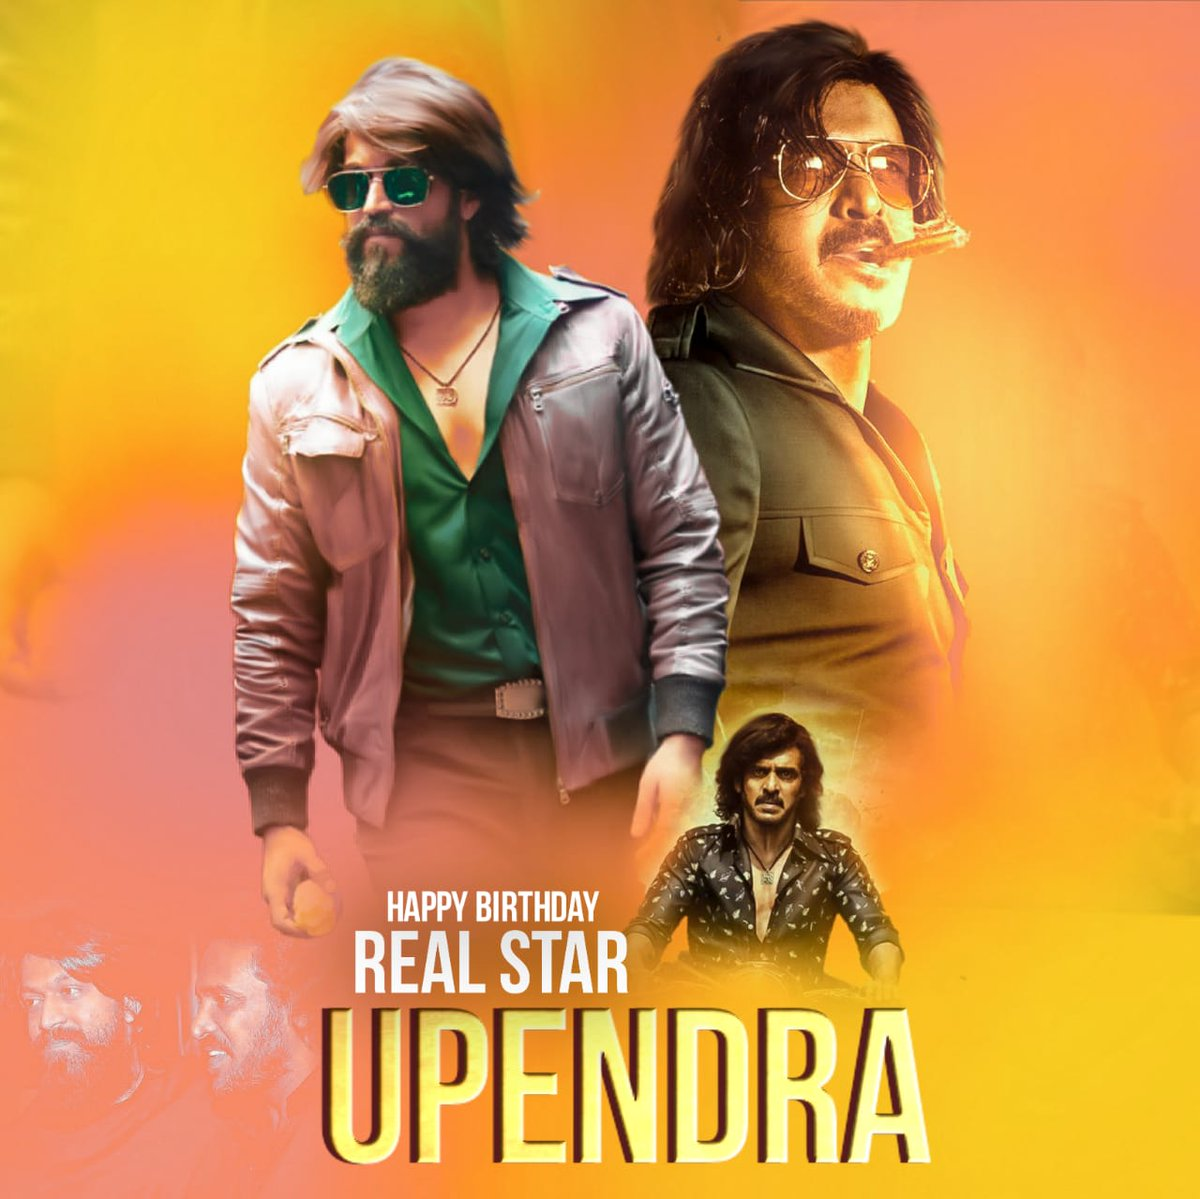 Best Birthday Wishes To Real Star @nimmaupendra Sir Behalf Of @TheNameIsYash BOSS Fans ♥️  Waiting For #Kabza  #HappyBirthdayUpendra #KGFChapter2 https://t.co/3VX6ZUtIro